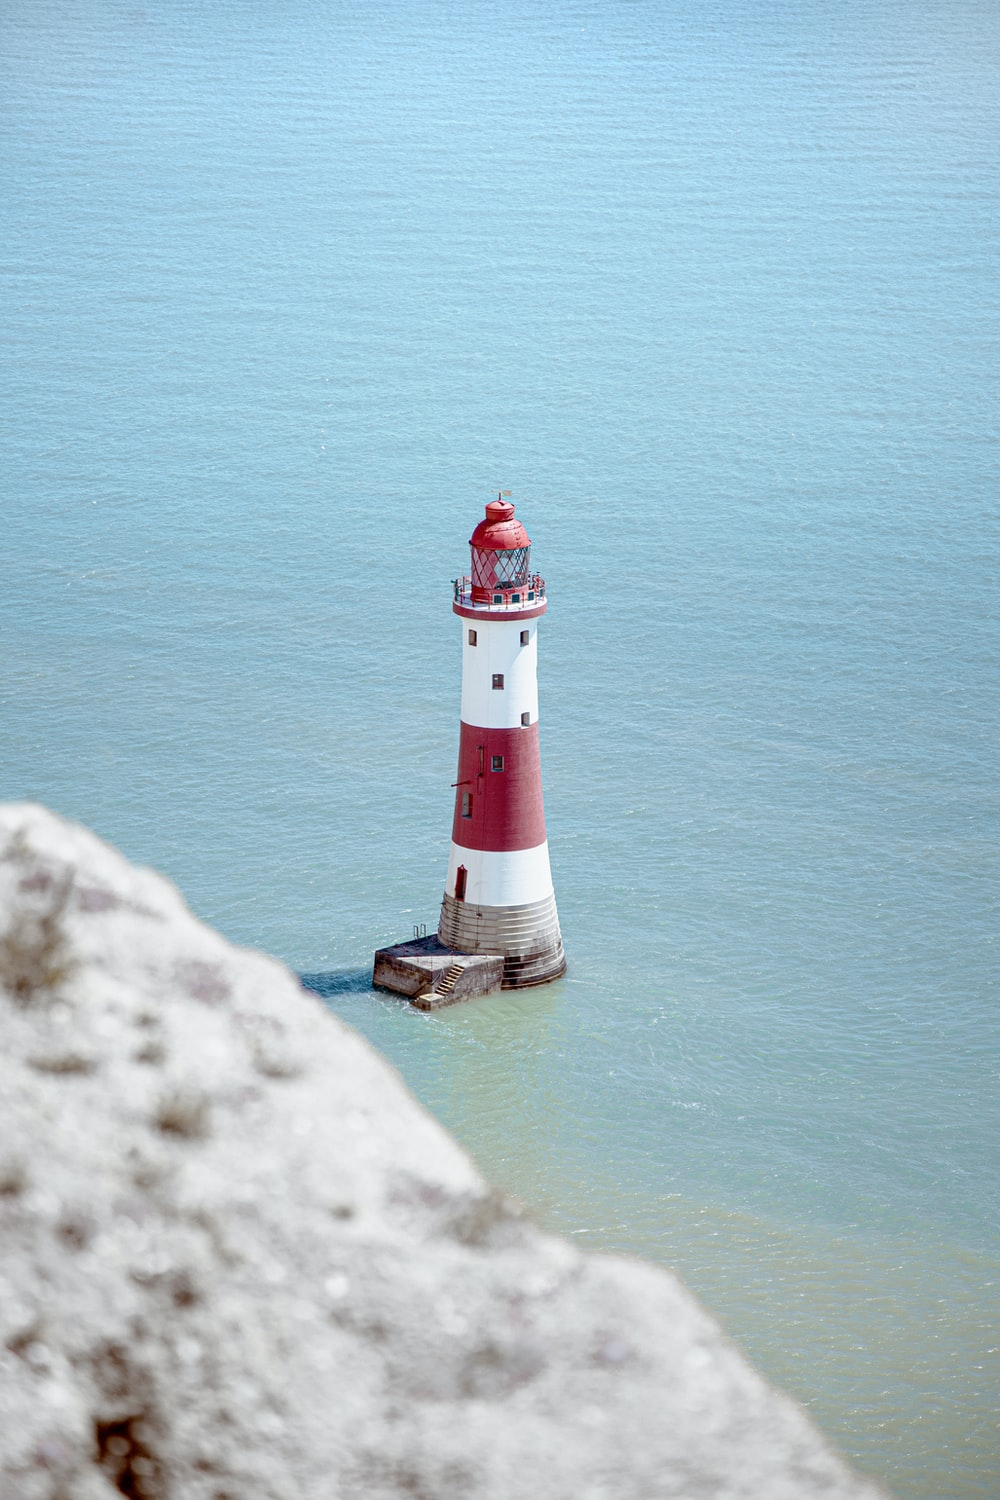 white and red lighthouse on rock formation beside body of water during daytime